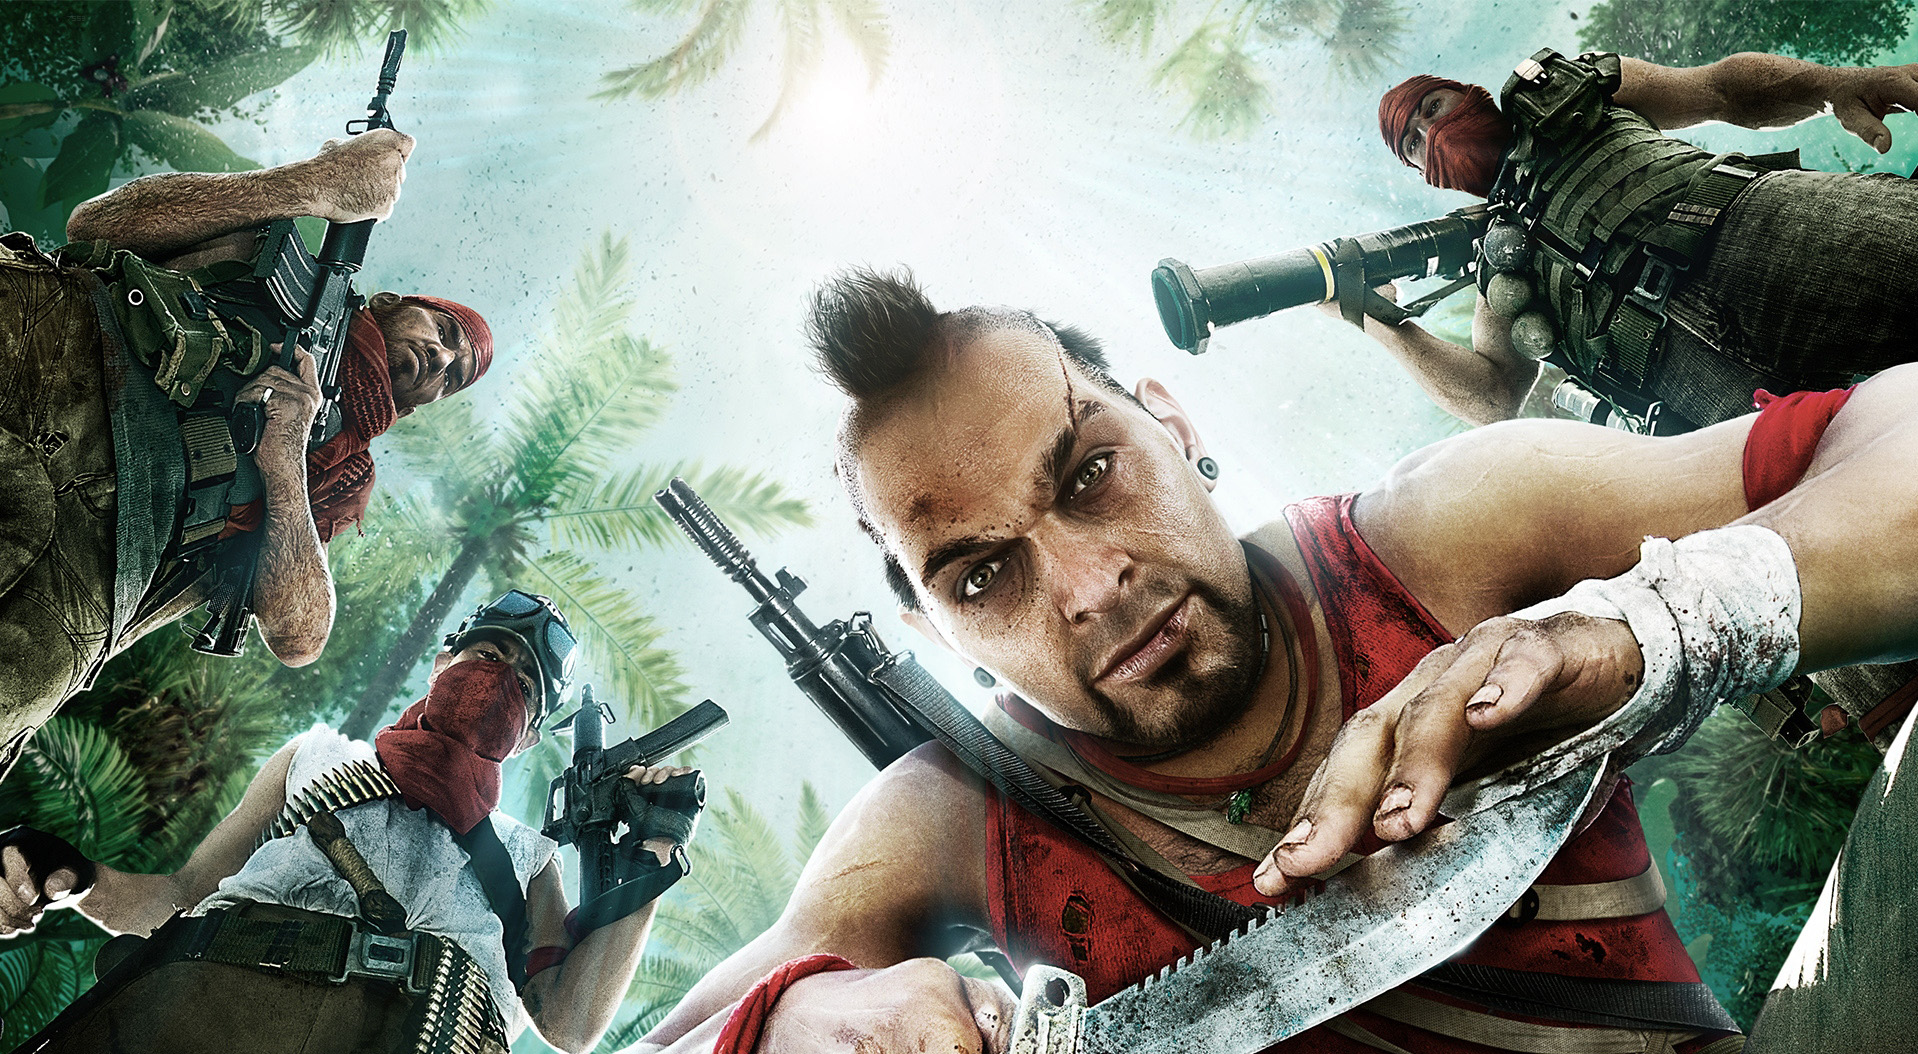 Composer may have Inadvertently Announced Far Cry 4 - Cliff Martinez reveals he's composing soundtrack for Ubisoft's next instalment